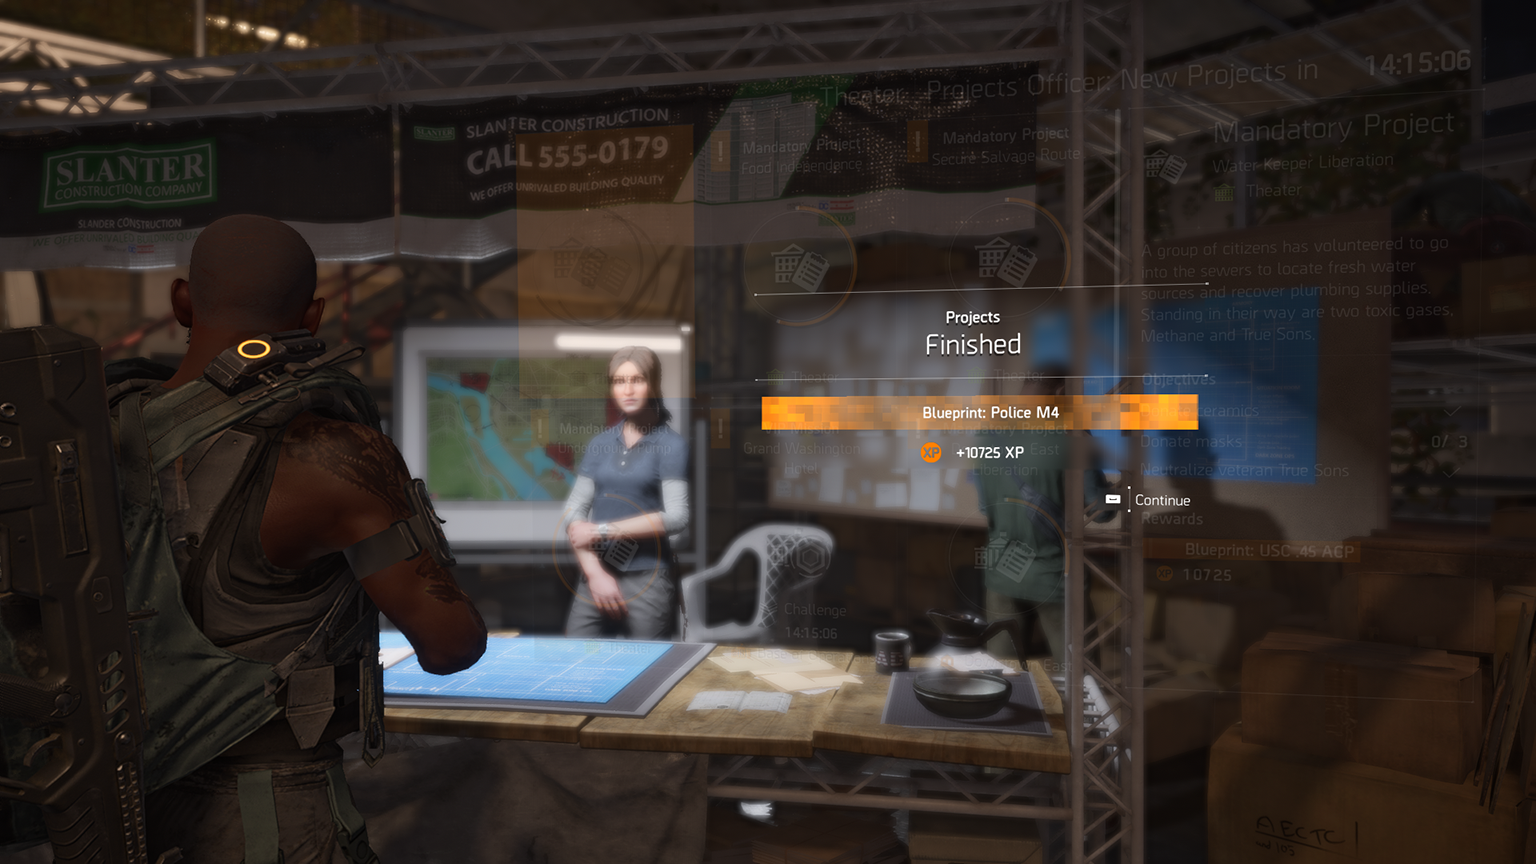 The Division 2 project